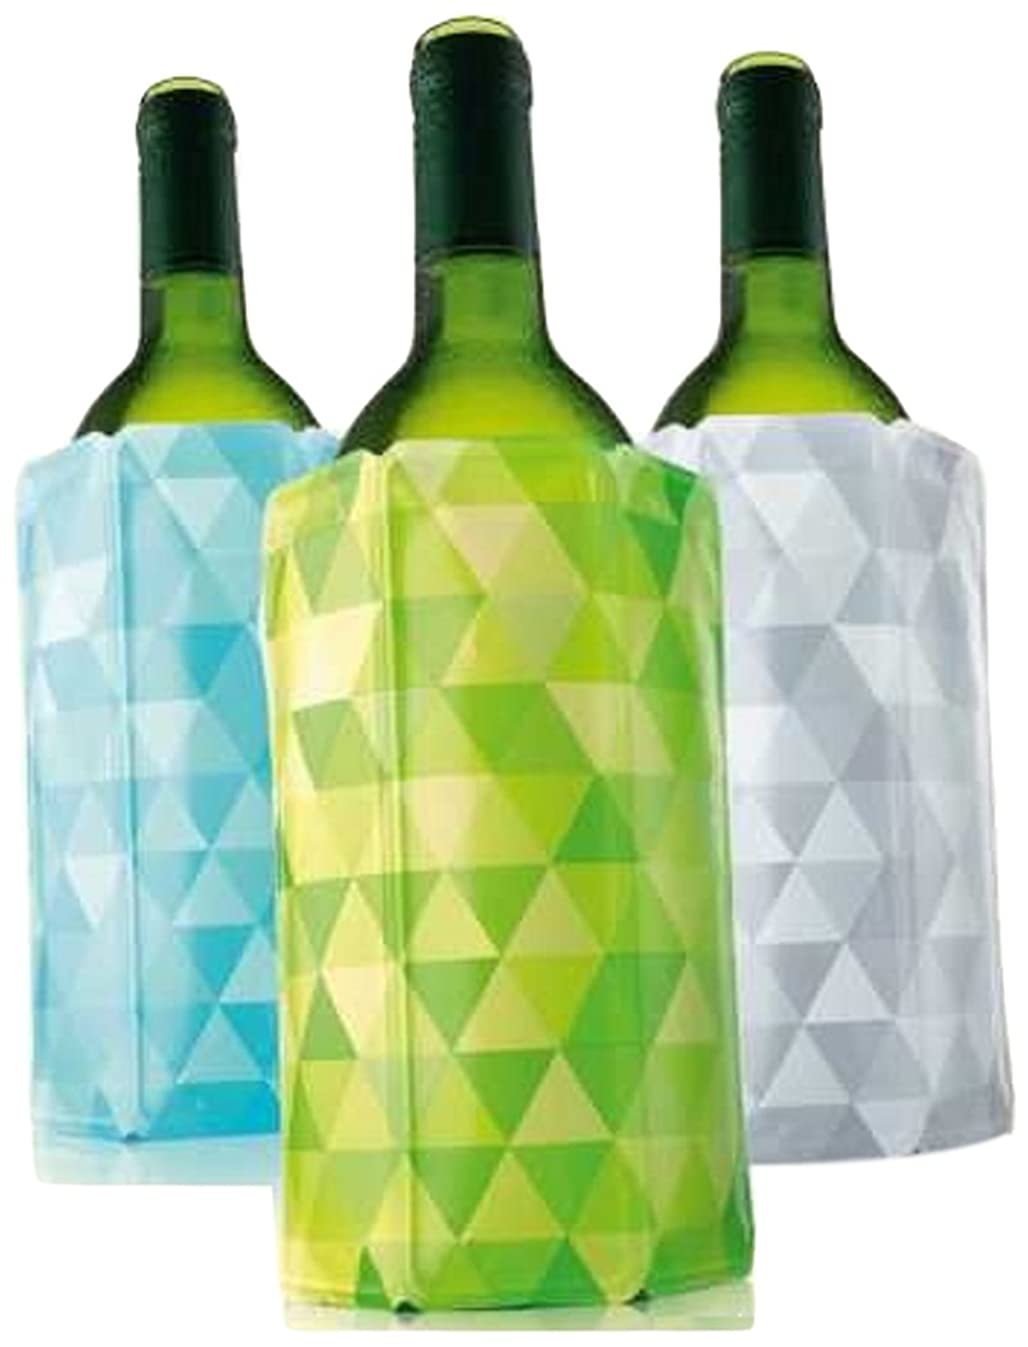 Vacu Vin Rapid Ice Wine Cooler - Set of 3 - Diamond Green, Blue, and Gray